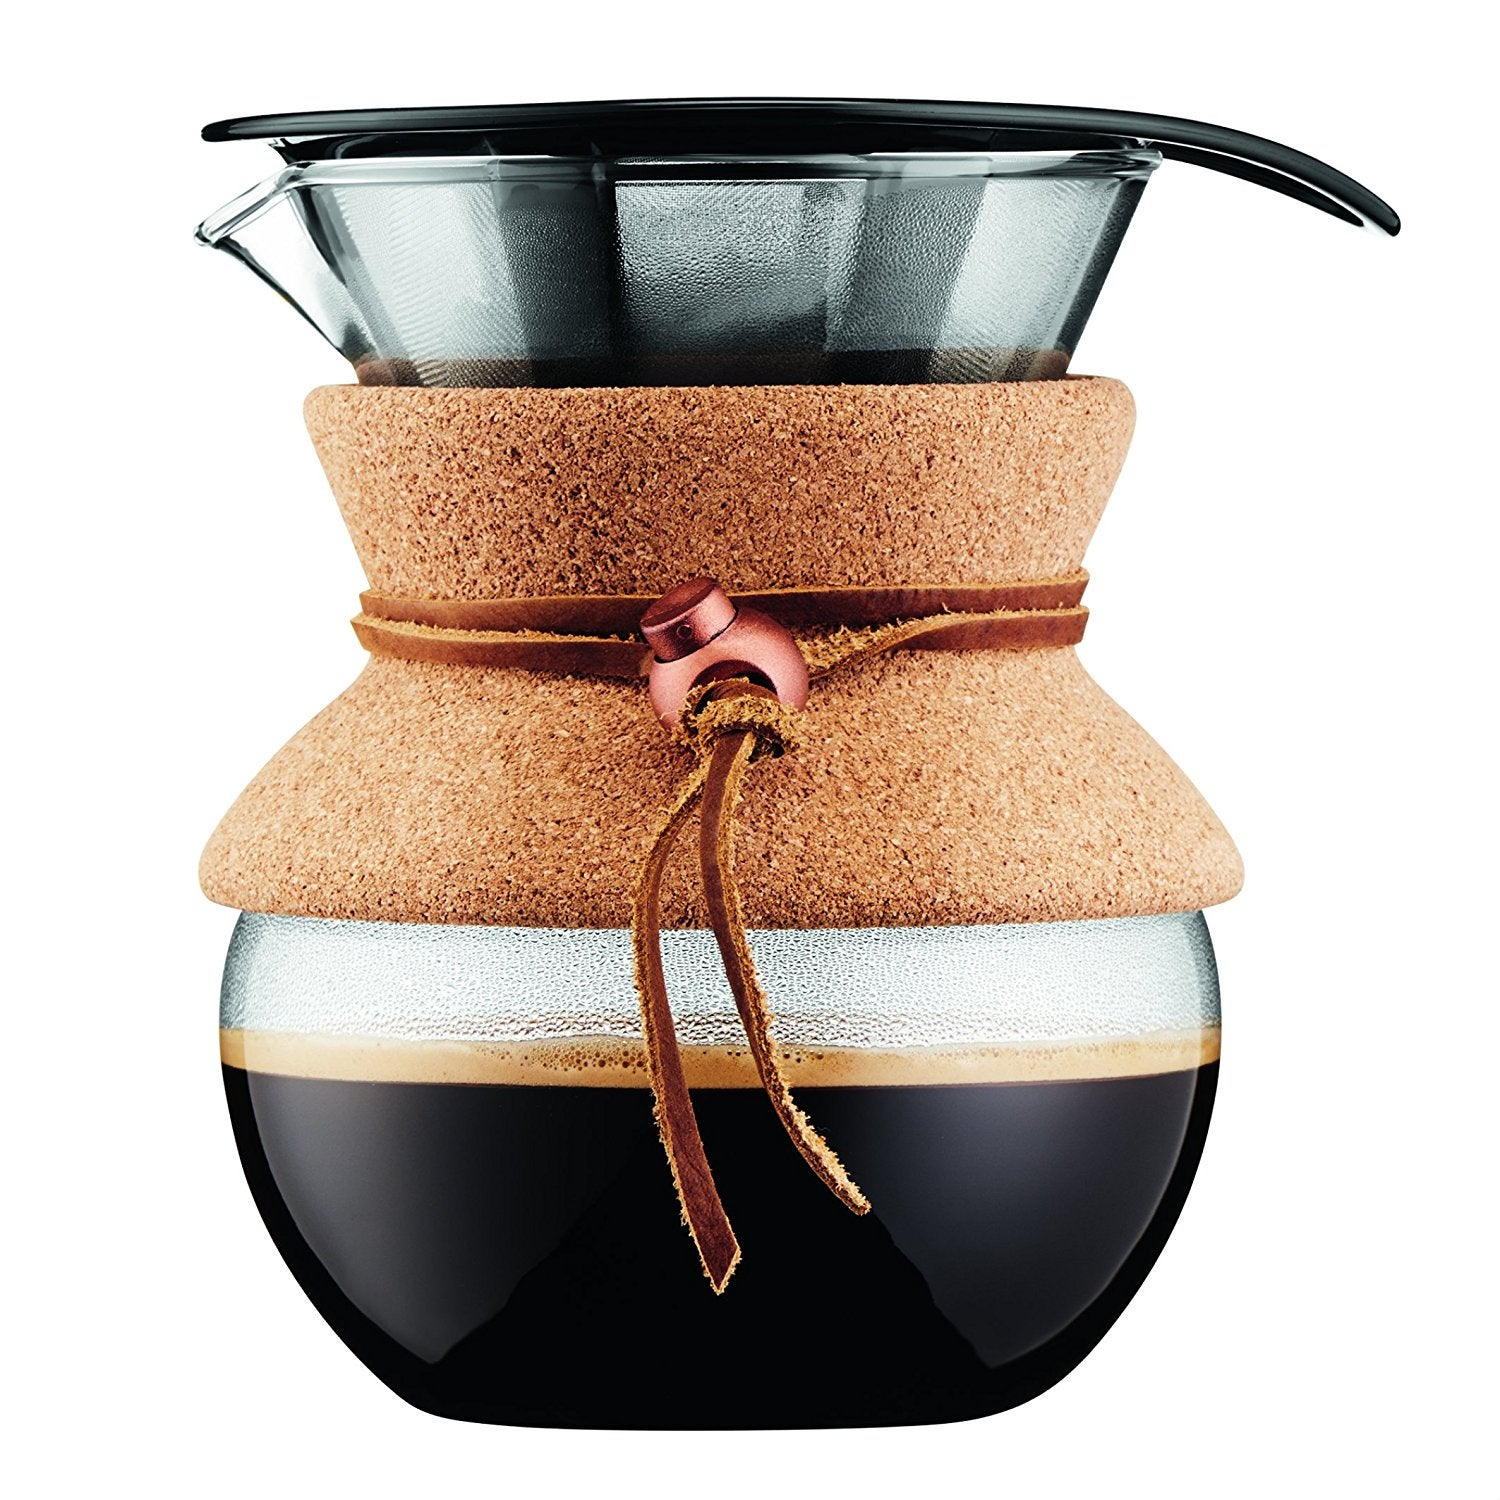 Bodum Pour-Over Coffee Maker